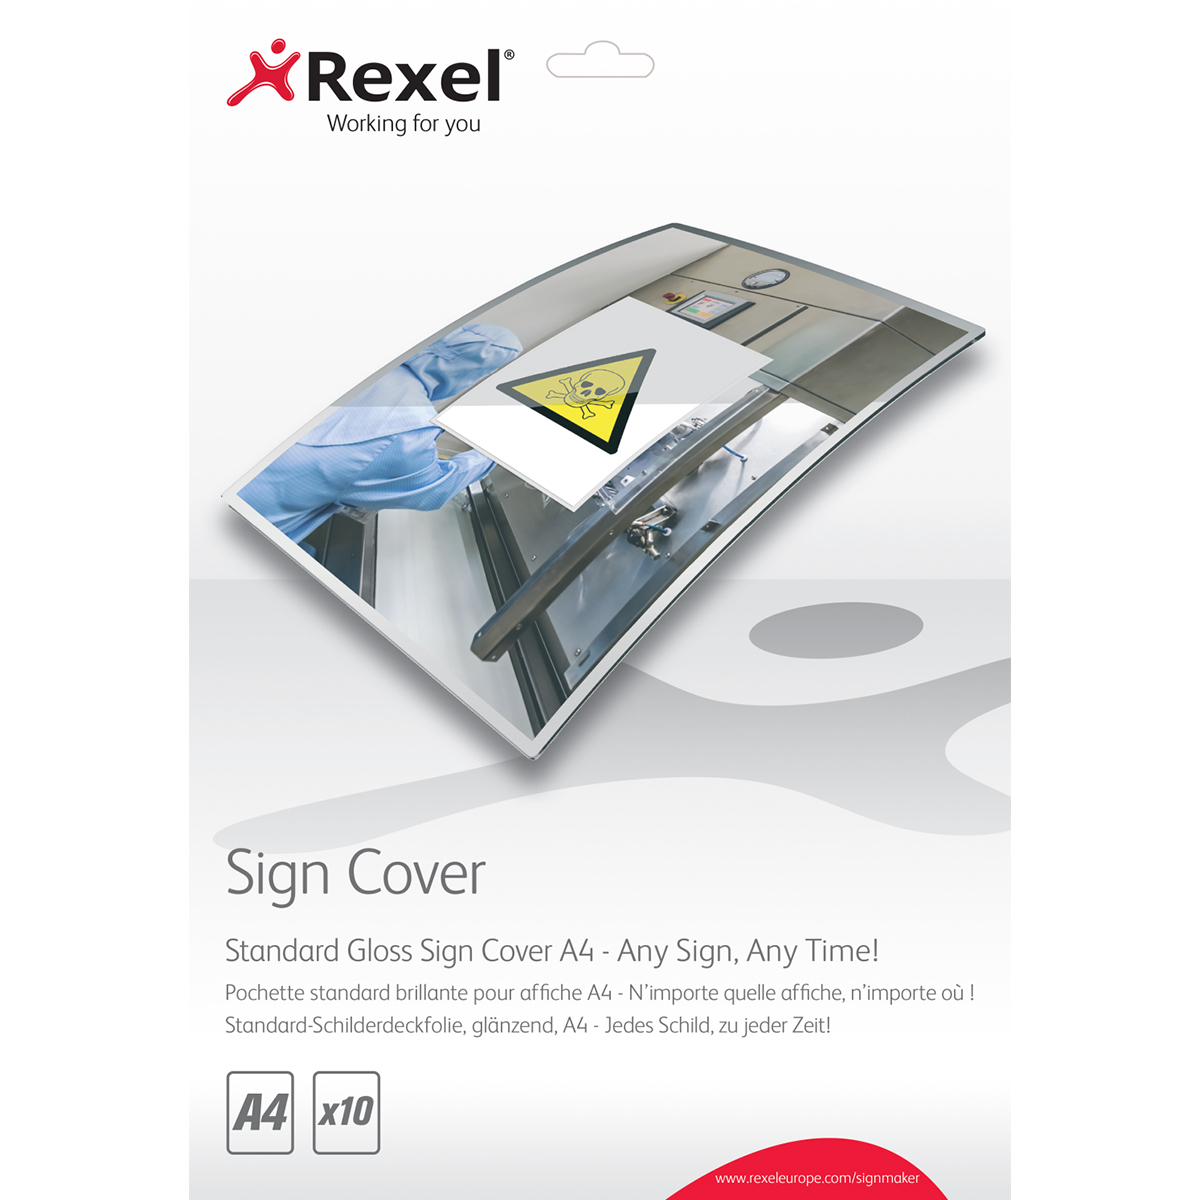 Rexel 2104251 Signmaker Standard Gloss Sign Covers A4 Pack of 10